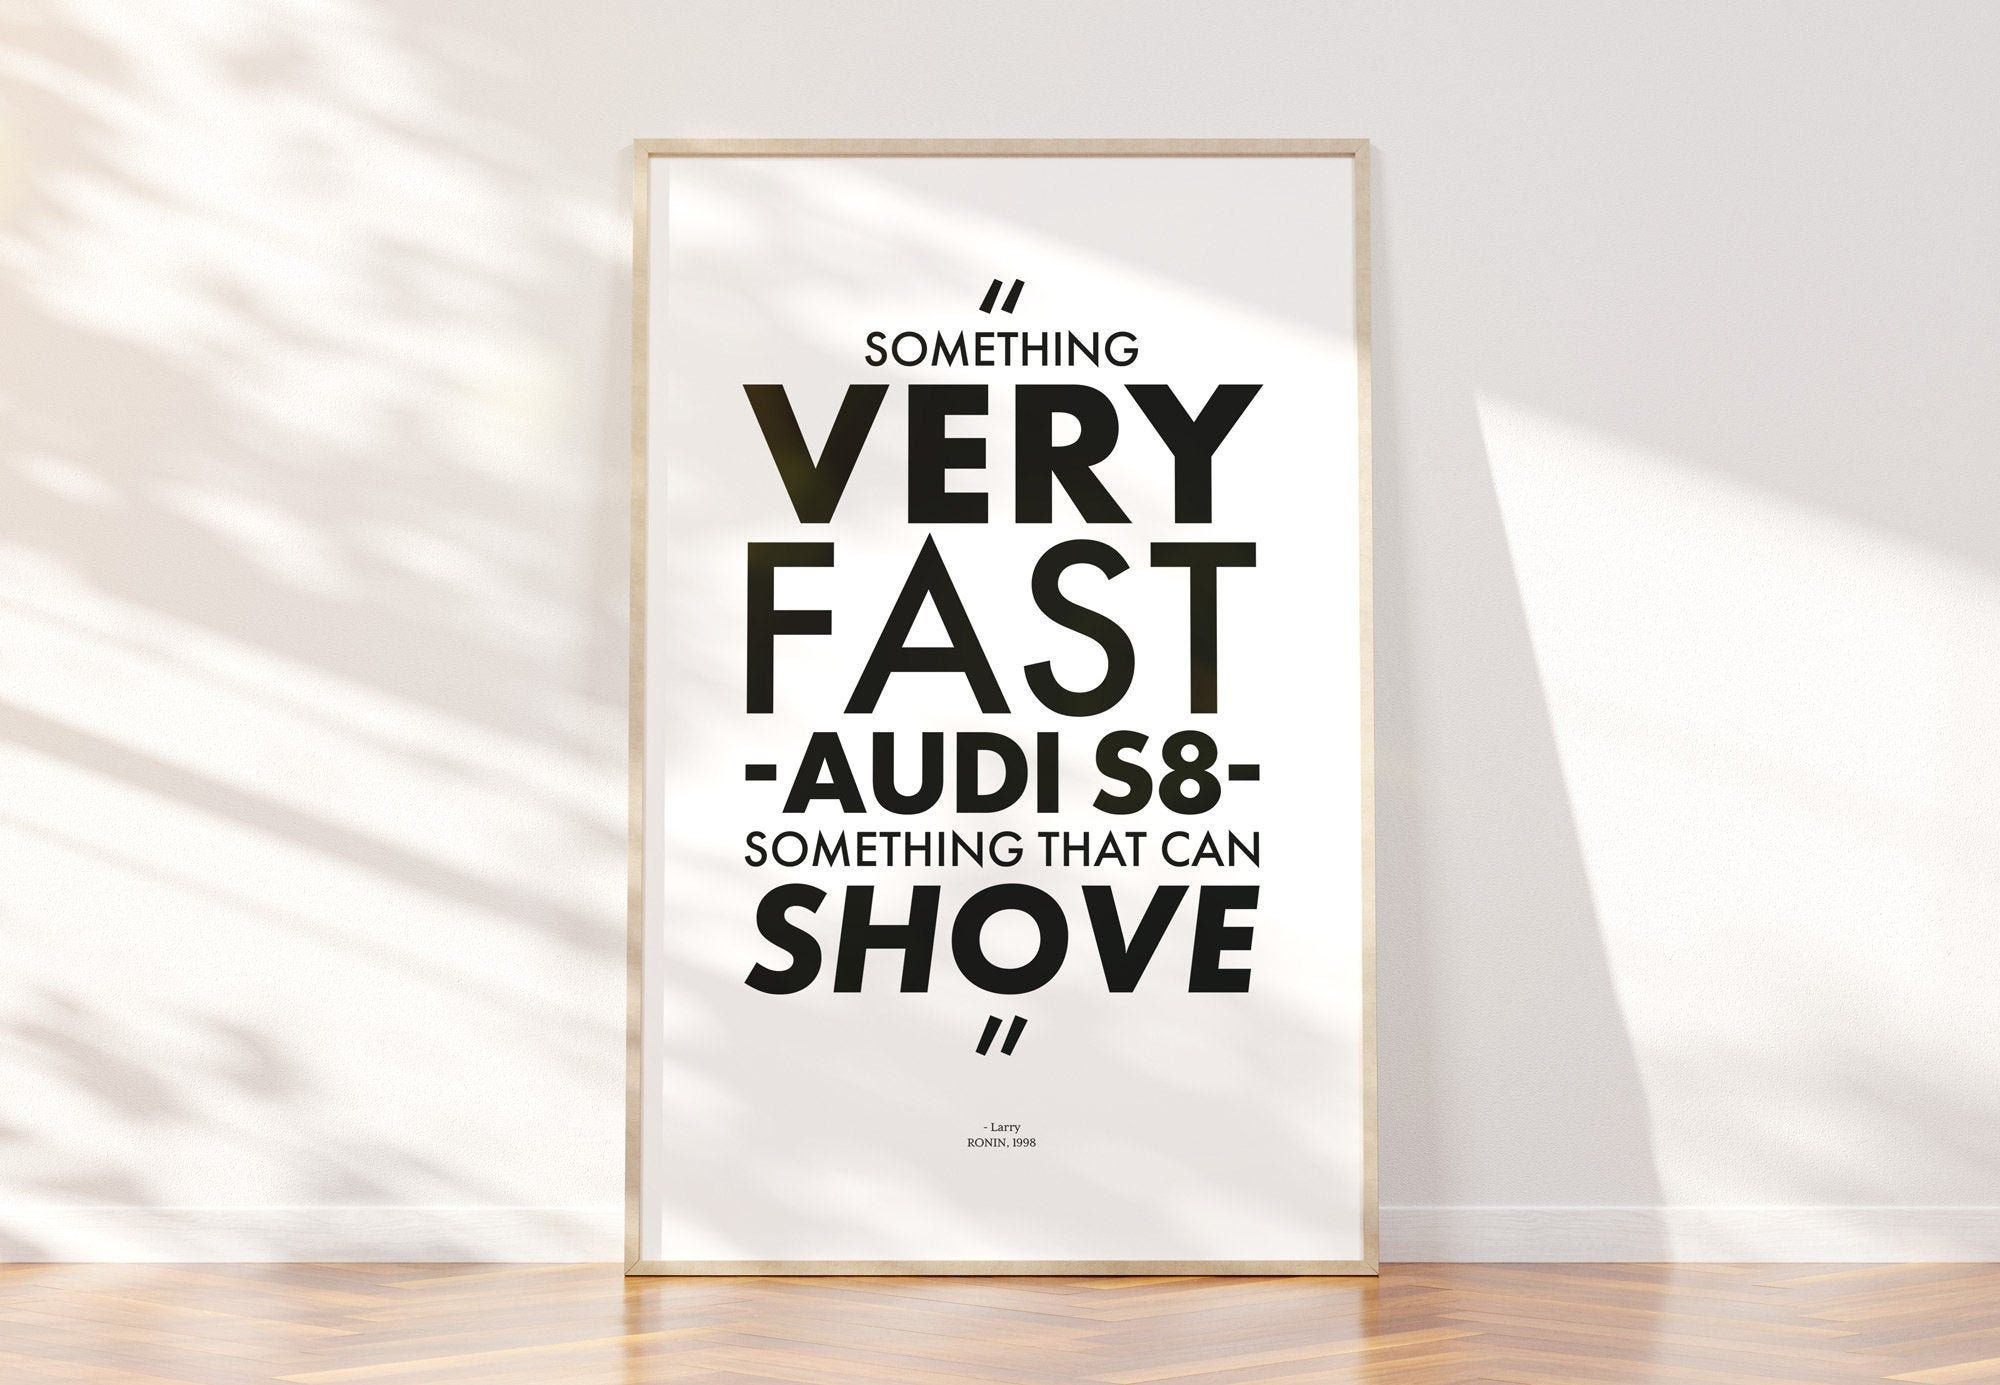 ronin movie quote poster very fast audi s8 shove typography car chase action robert de niro jean reno 1998 classic instant download quote posters printing websites typography art print pinterest